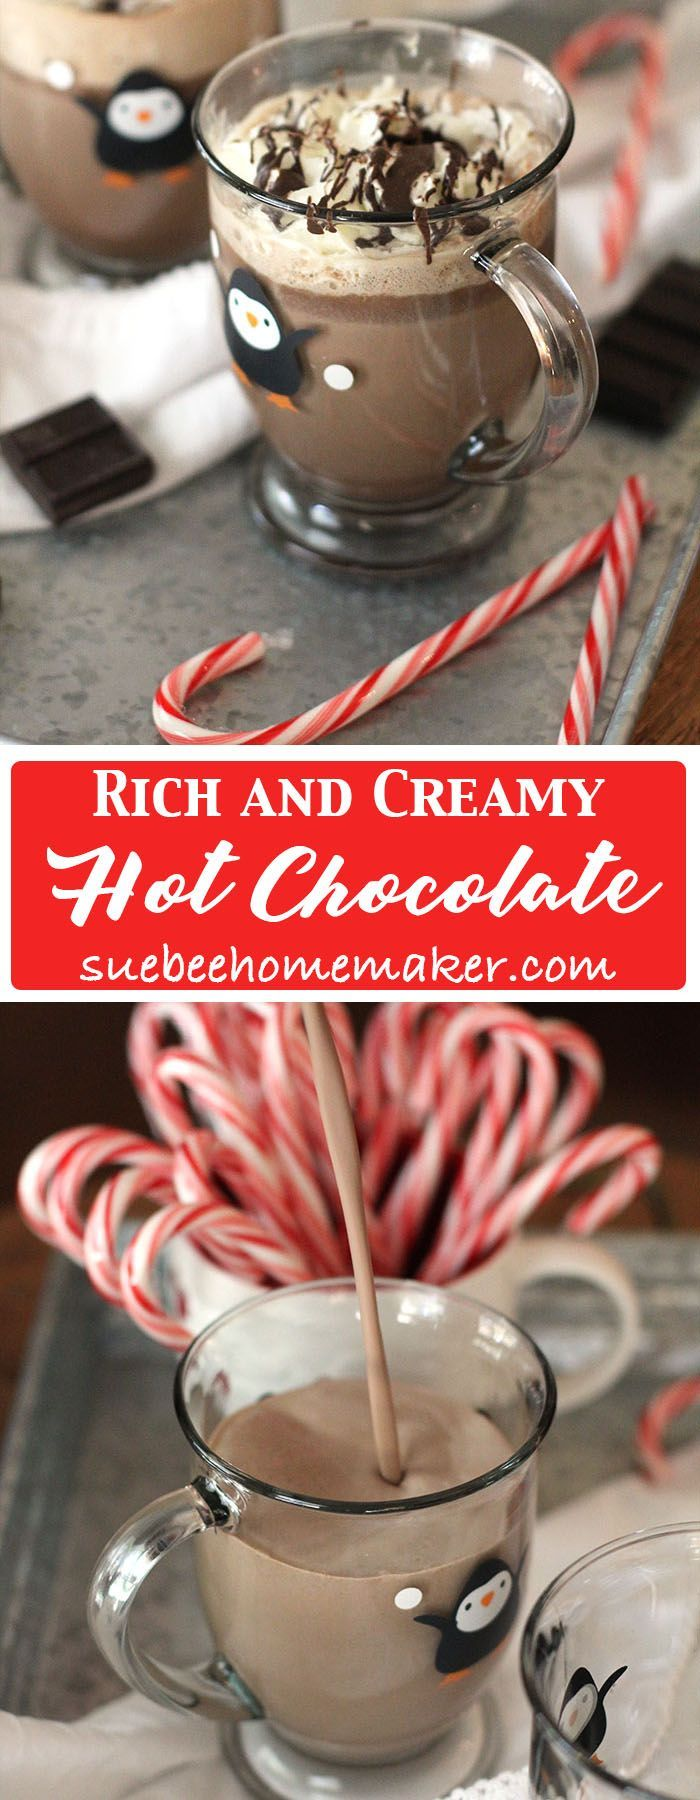 Rich and Creamy Hot Chocolate is the perfect indulgent drink for the holidays. Combine cocoa powder, sugar, milk, cream, vanilla, and baking bars! | suebeehomemaker.com